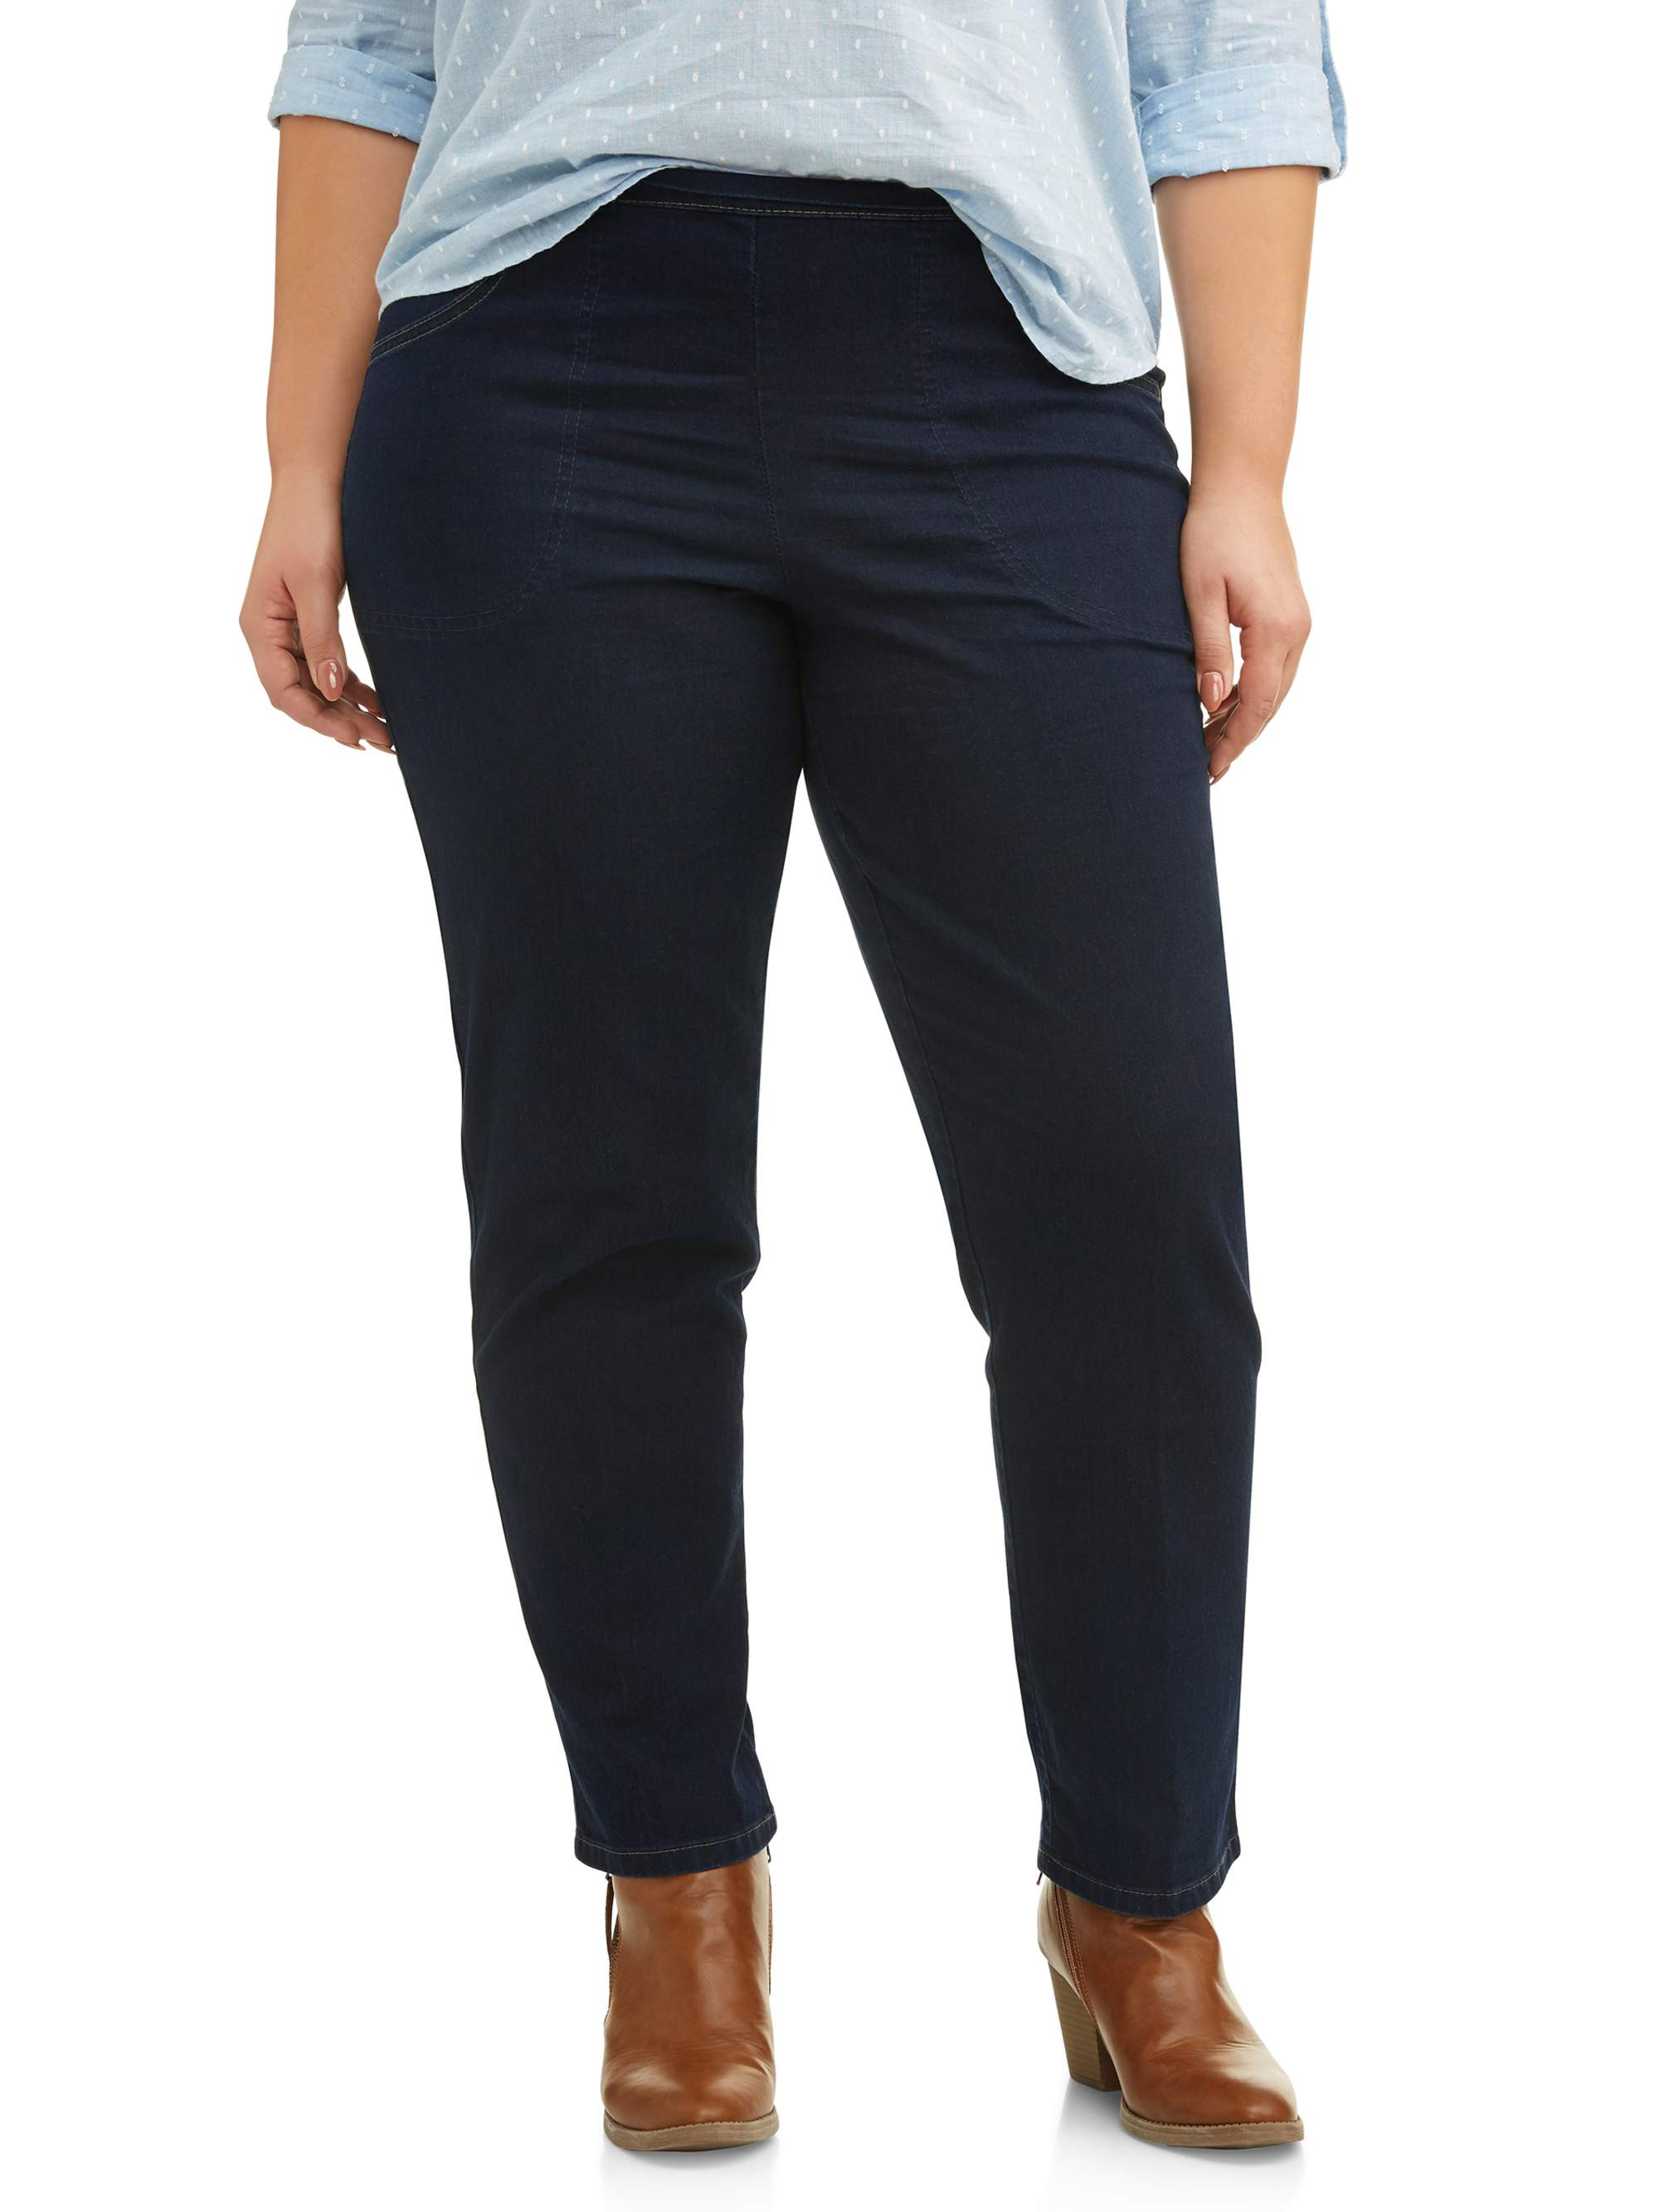 Women's Plus-Size 2-Pocket Stretch Pull-On Pants